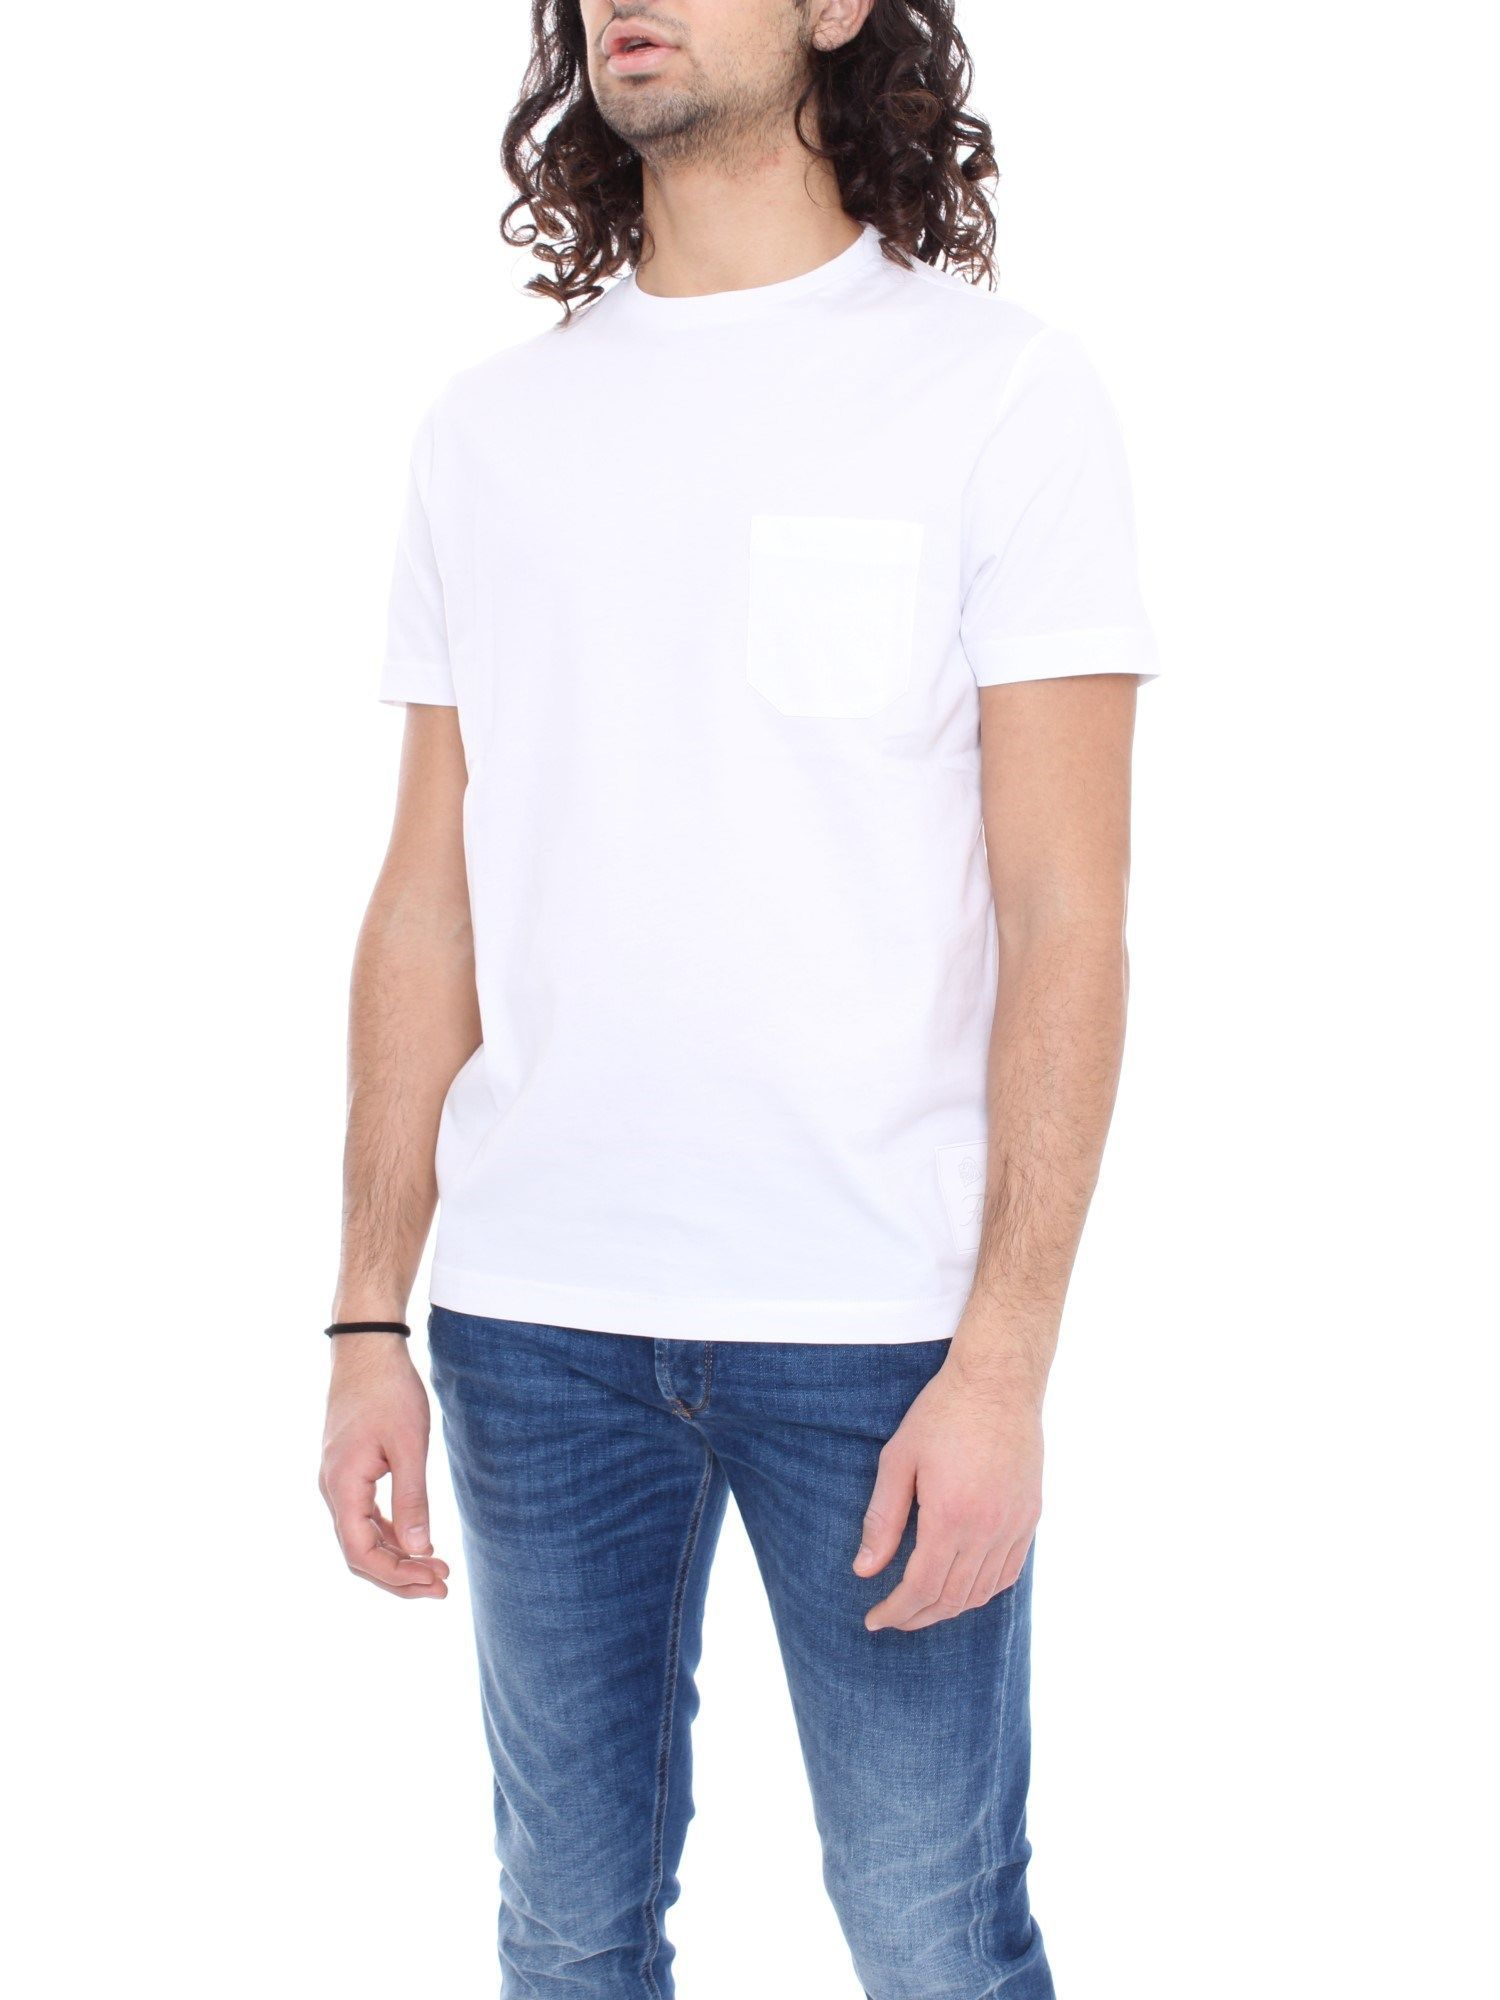 FAY MEN'S NPMB3401330PKUB001 WHITE COTTON T-SHIRT